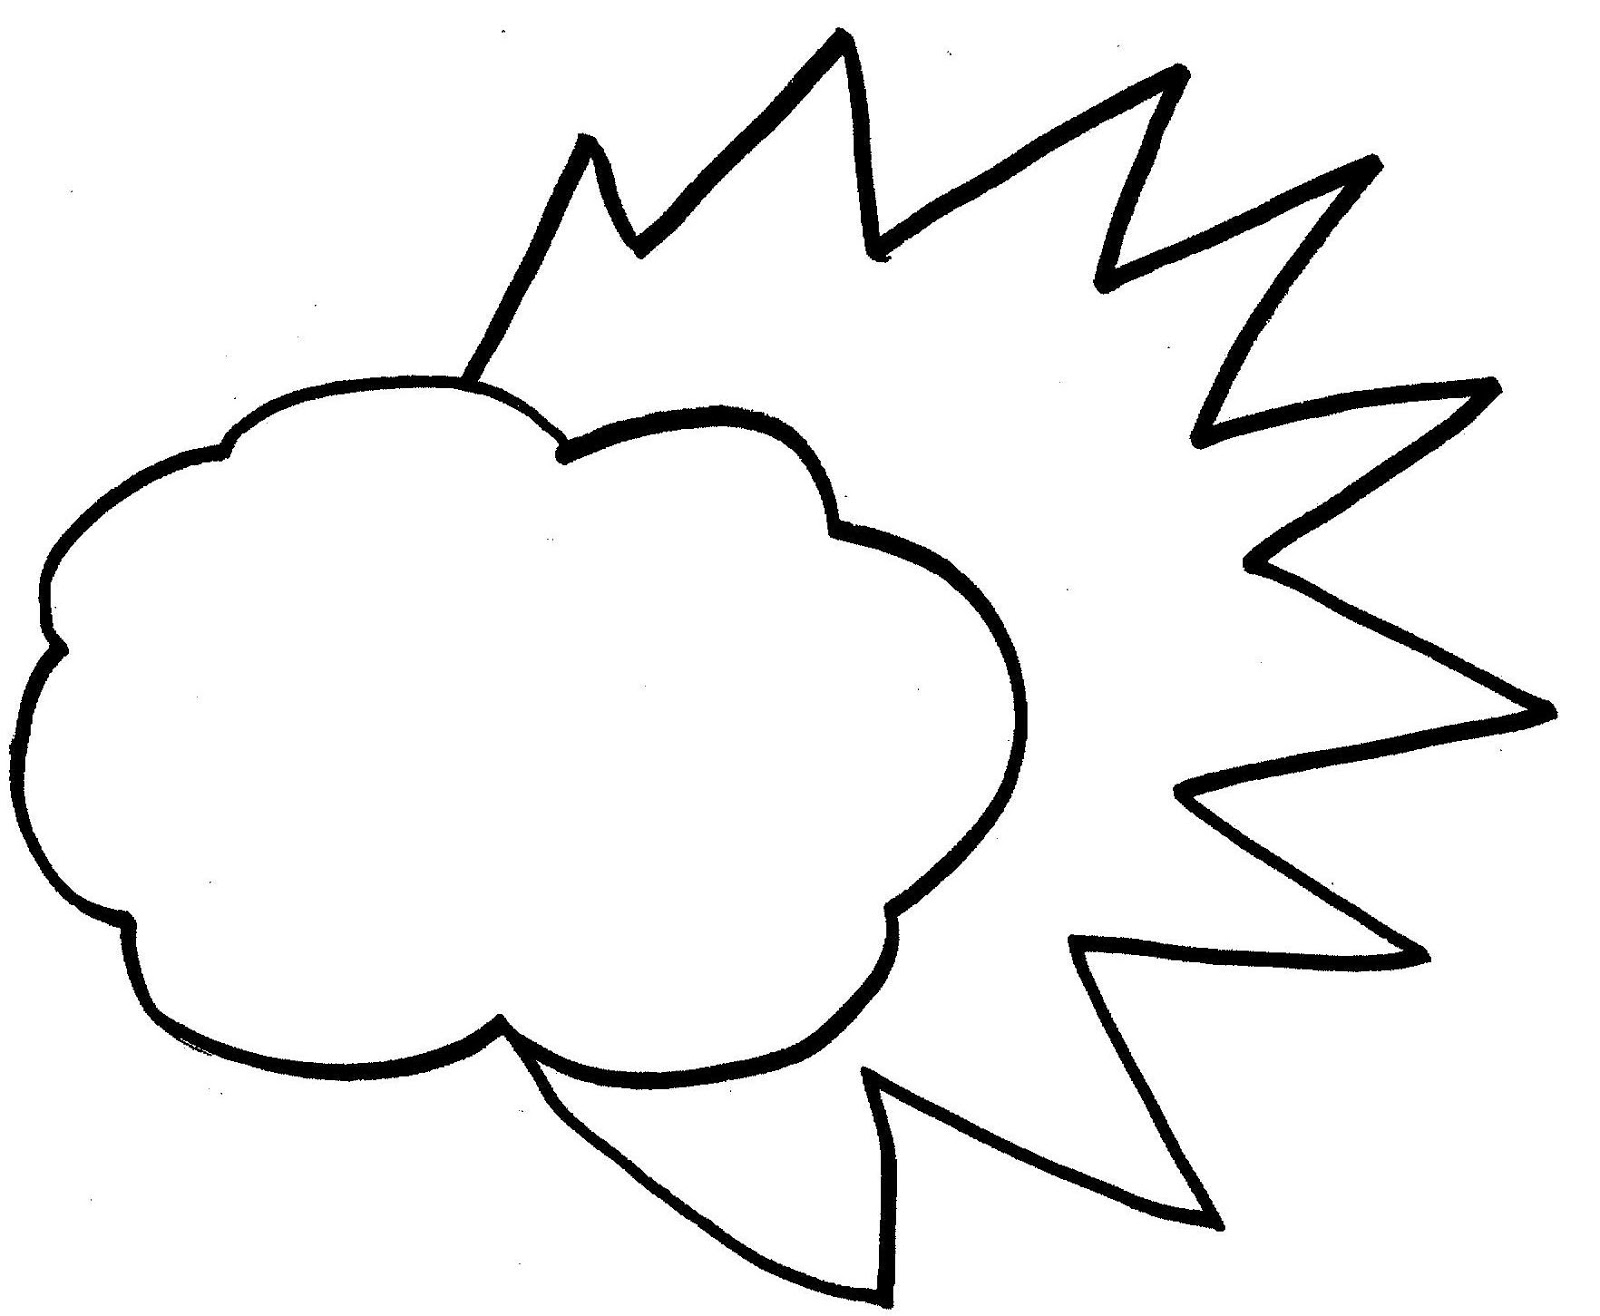 White Cloud coloring #20, Download drawings